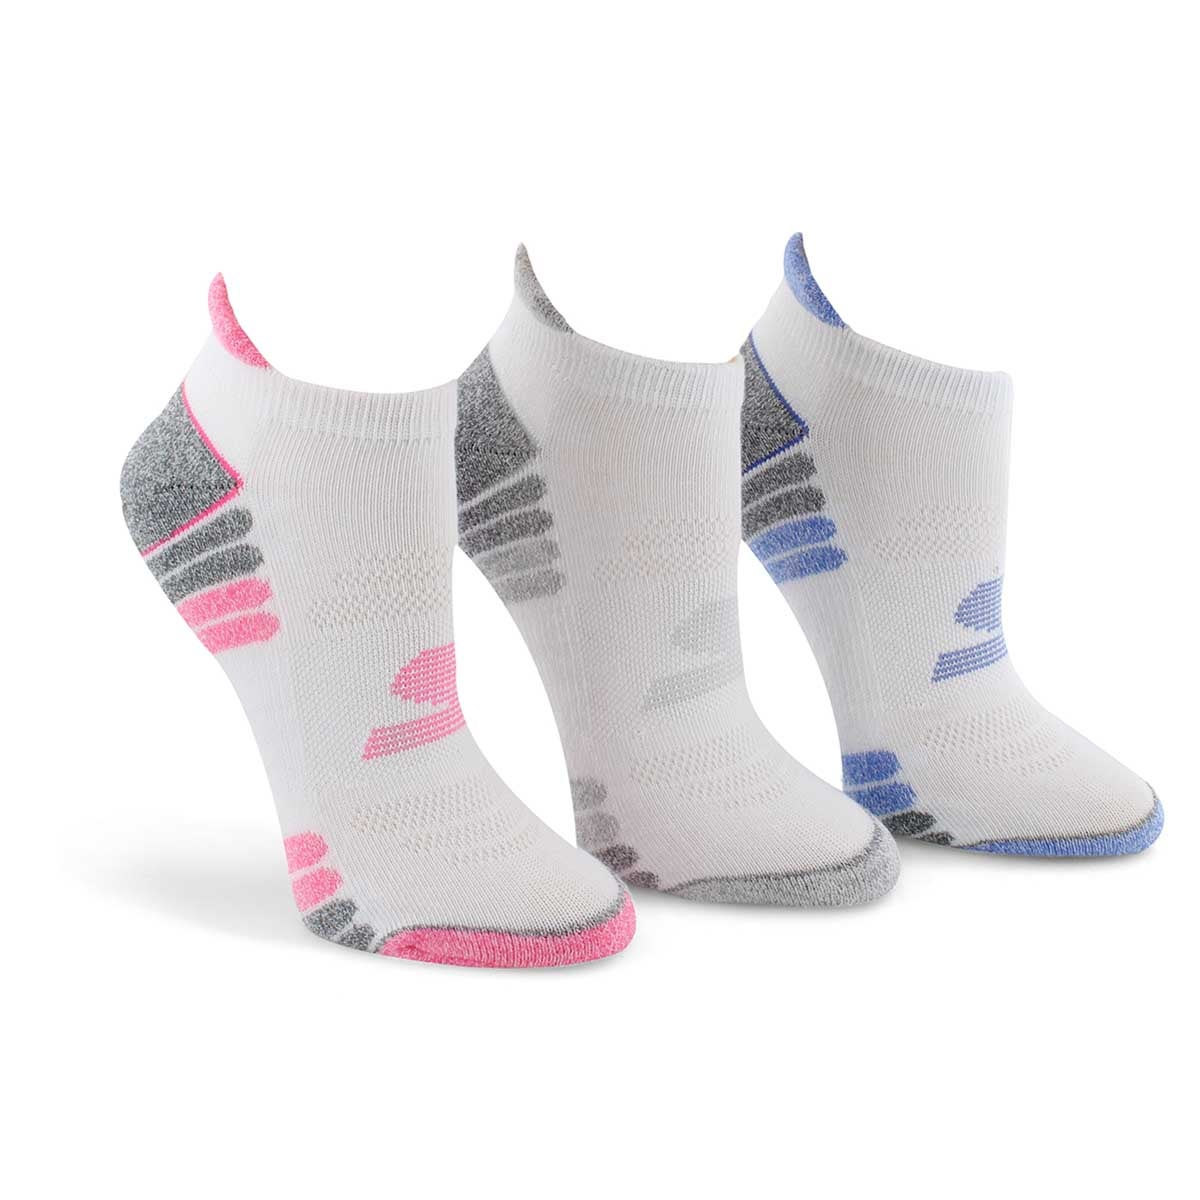 Lds Low Cut Half Terry wht/mlti sock 3pk